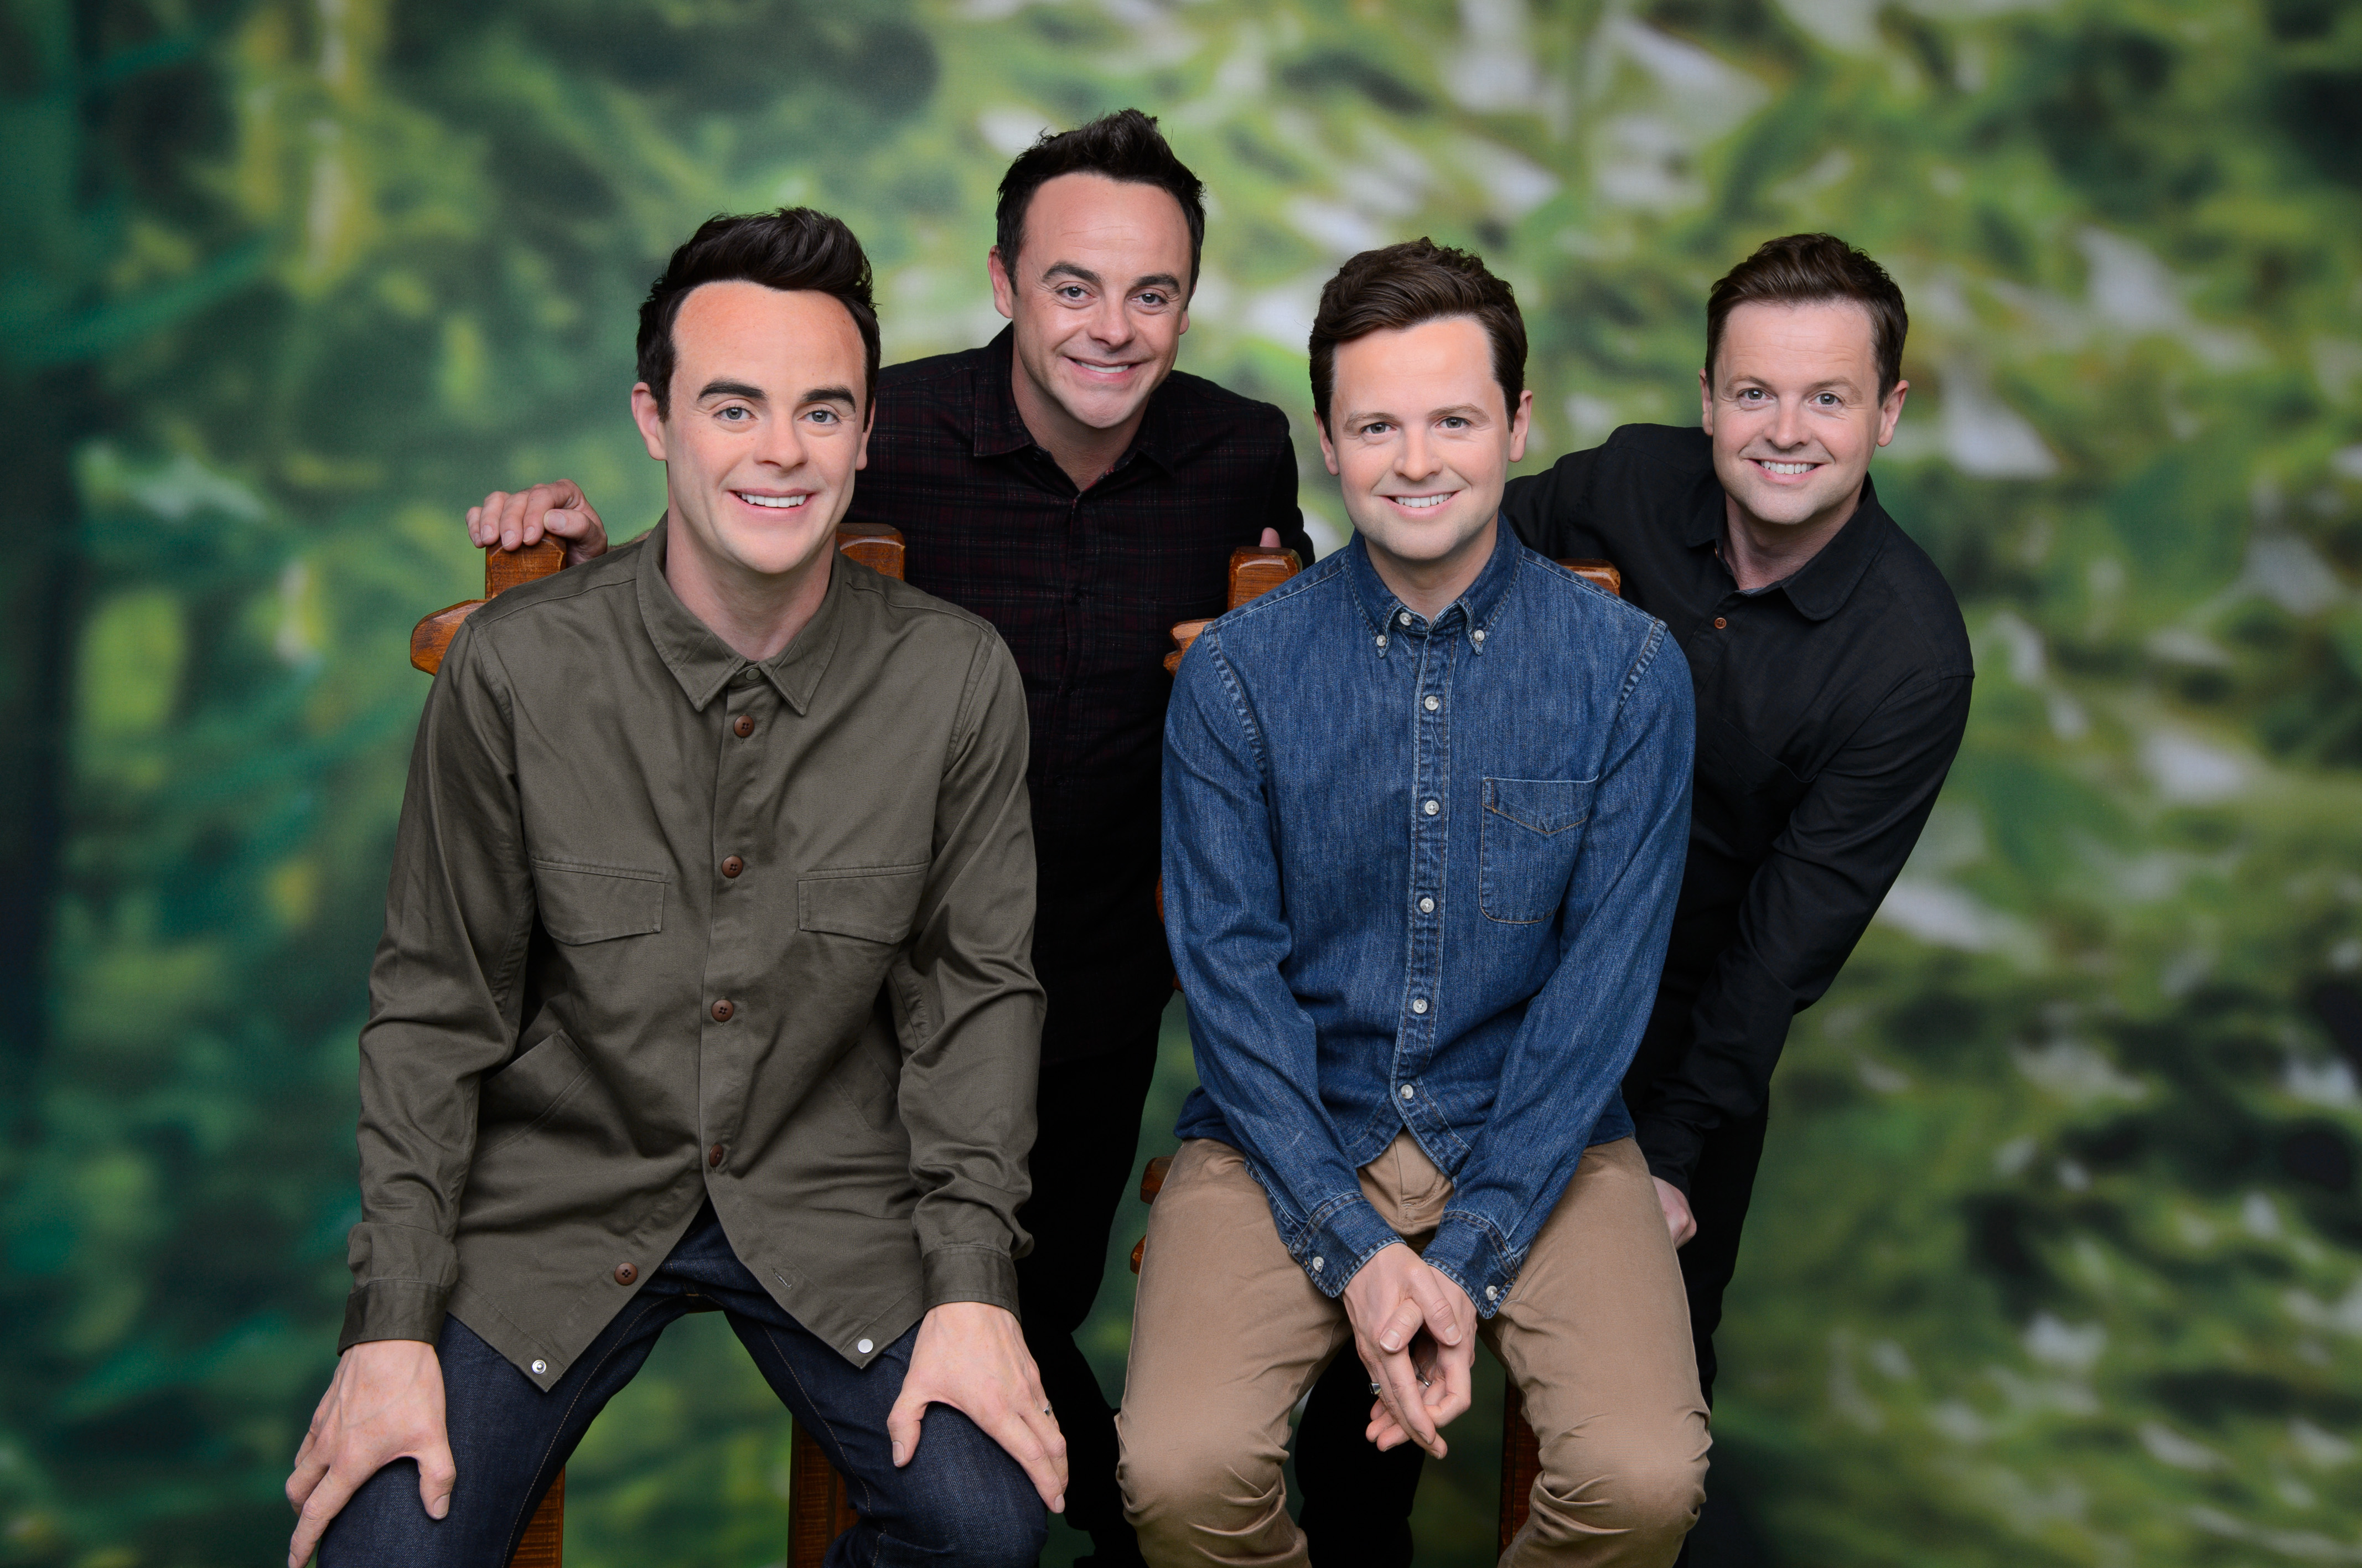 Ant and Dec meet their wax figures at Madame Tussauds Blackpool